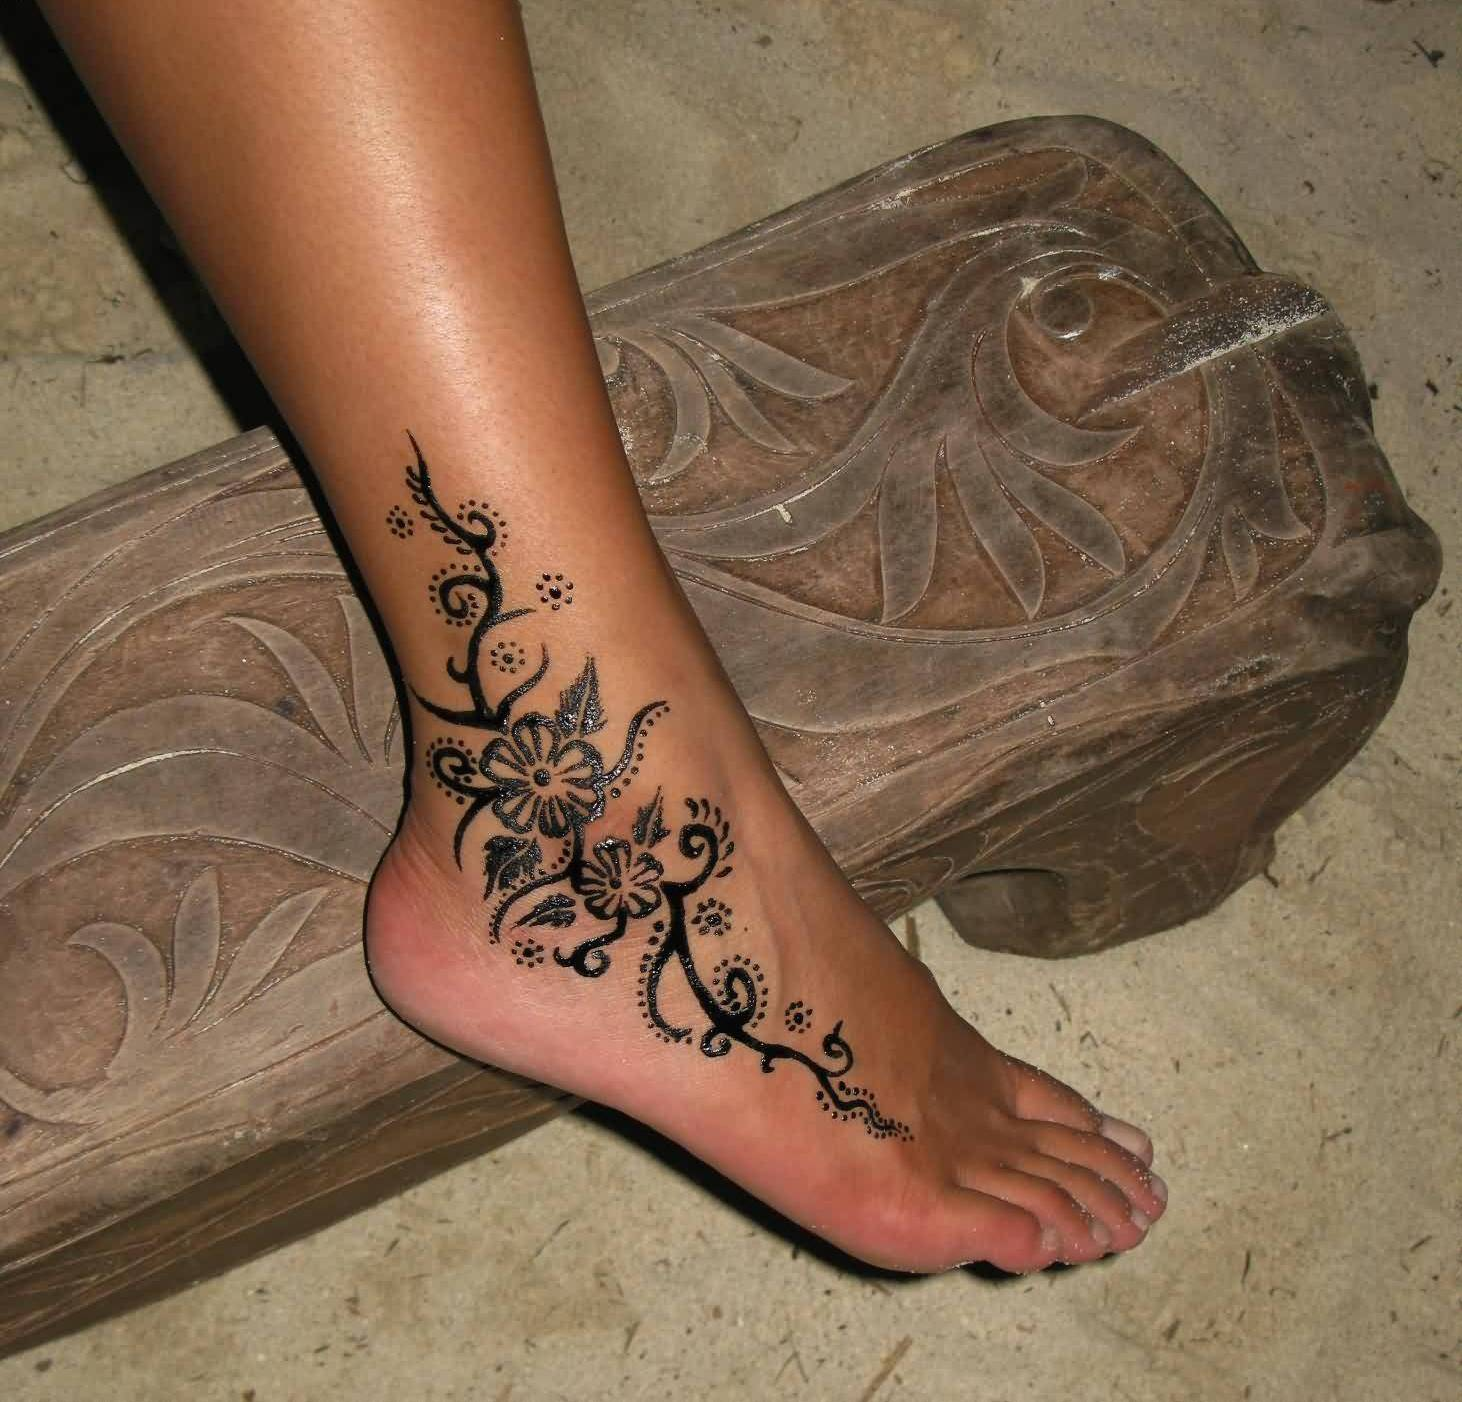 Ankle flower tattoo ideas and ankle flower tattoo designs great looking flower ankle tattoo design izmirmasajfo